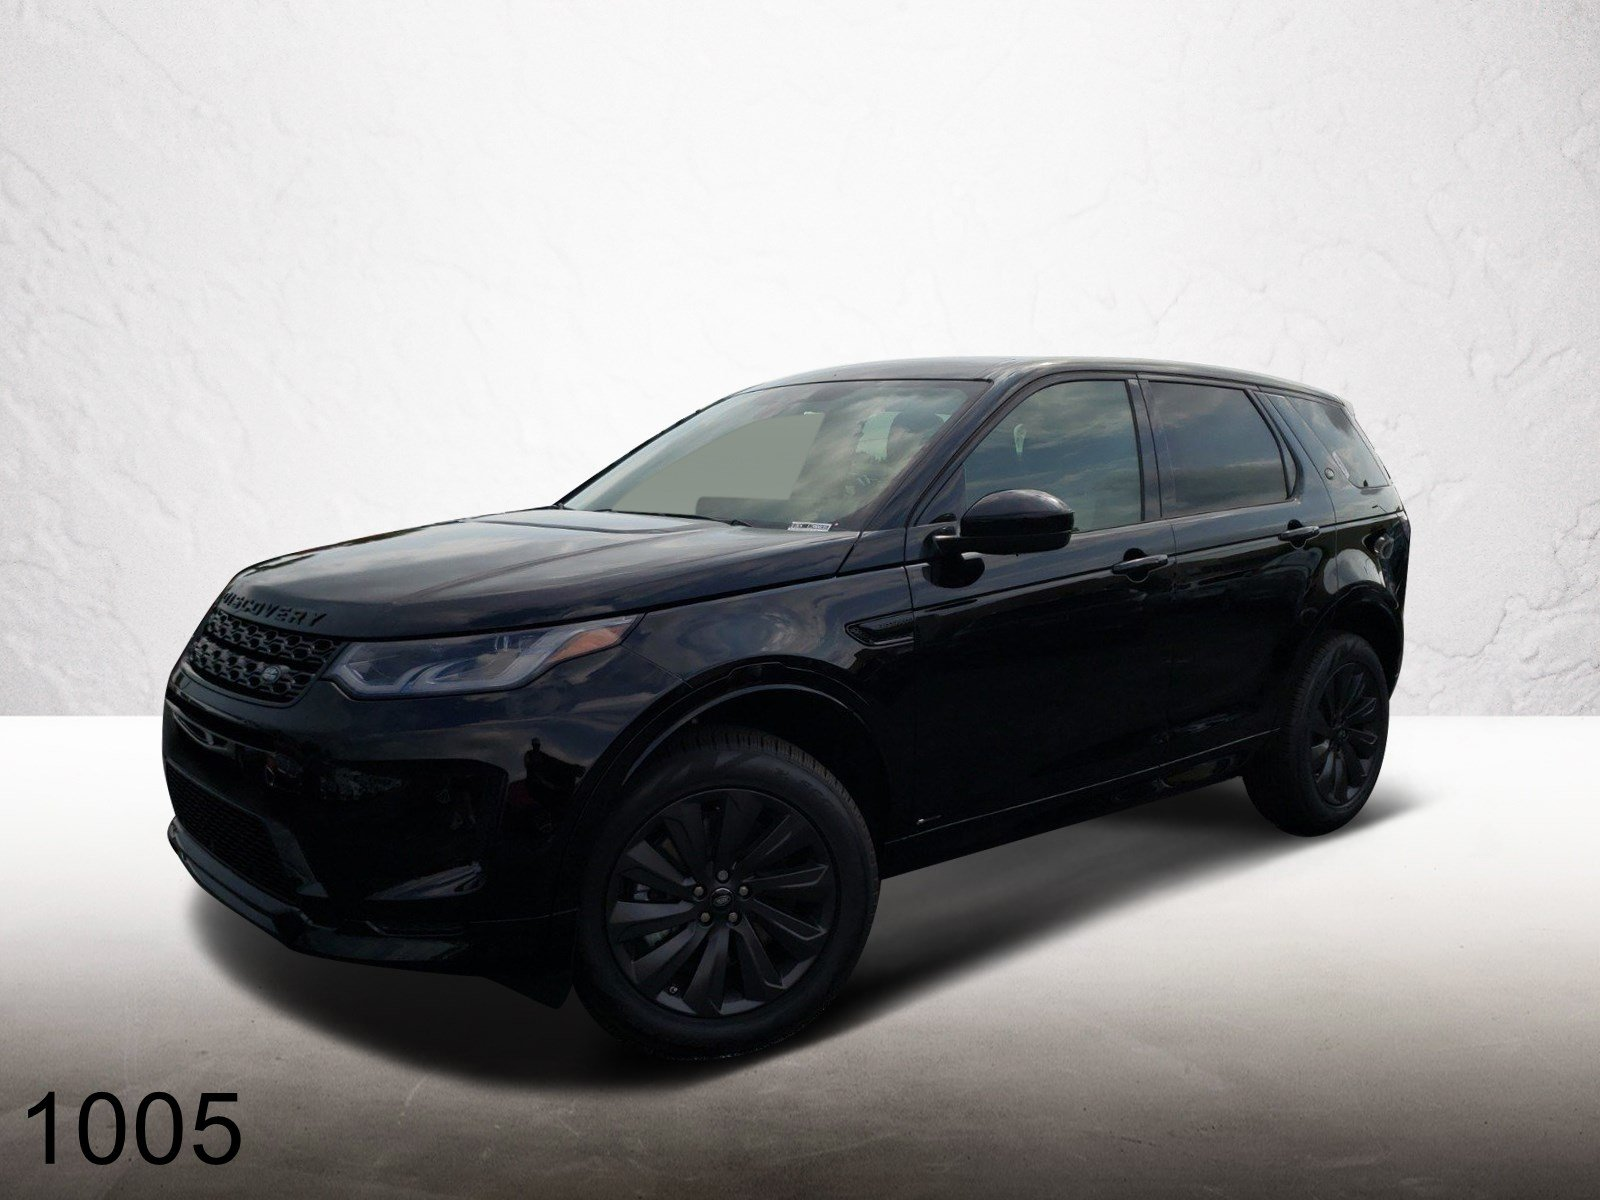 Range rover discovery sport 2020